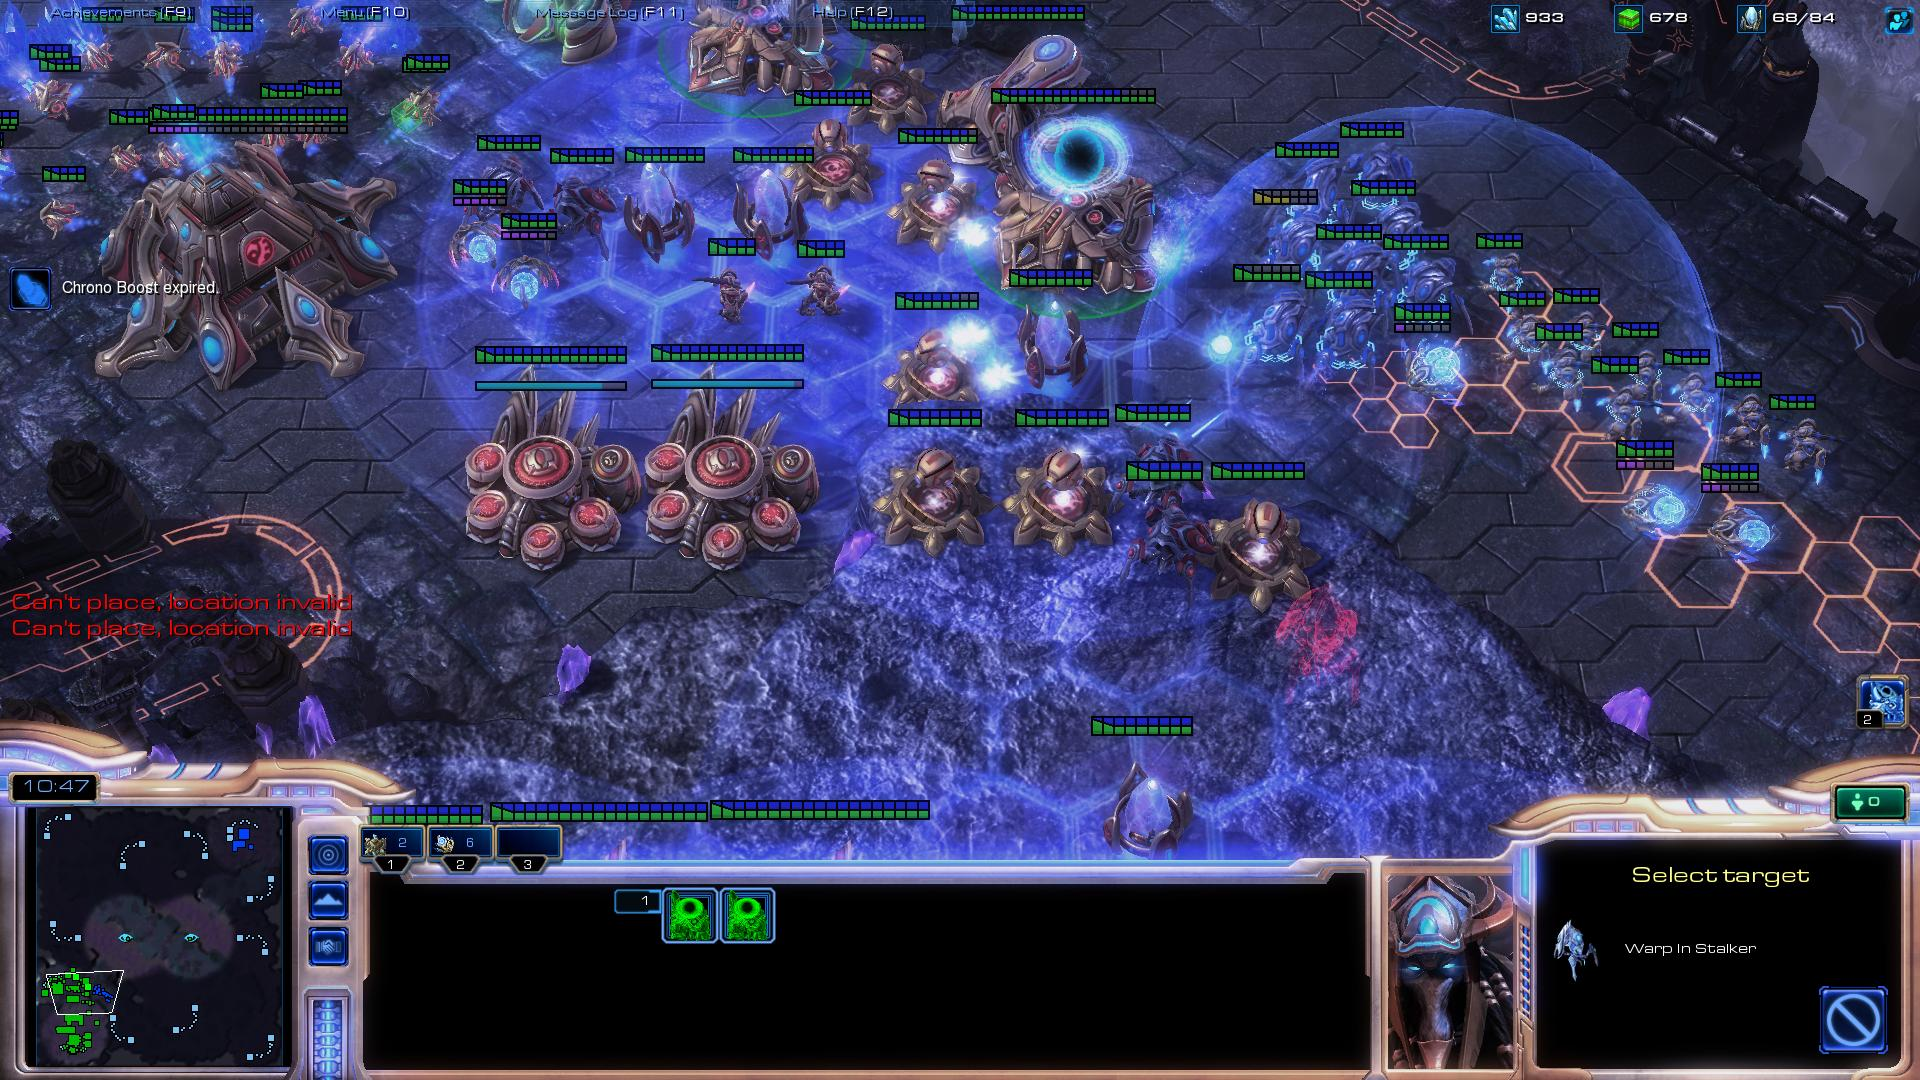 starcraft 2 protoss sc2 screenshot